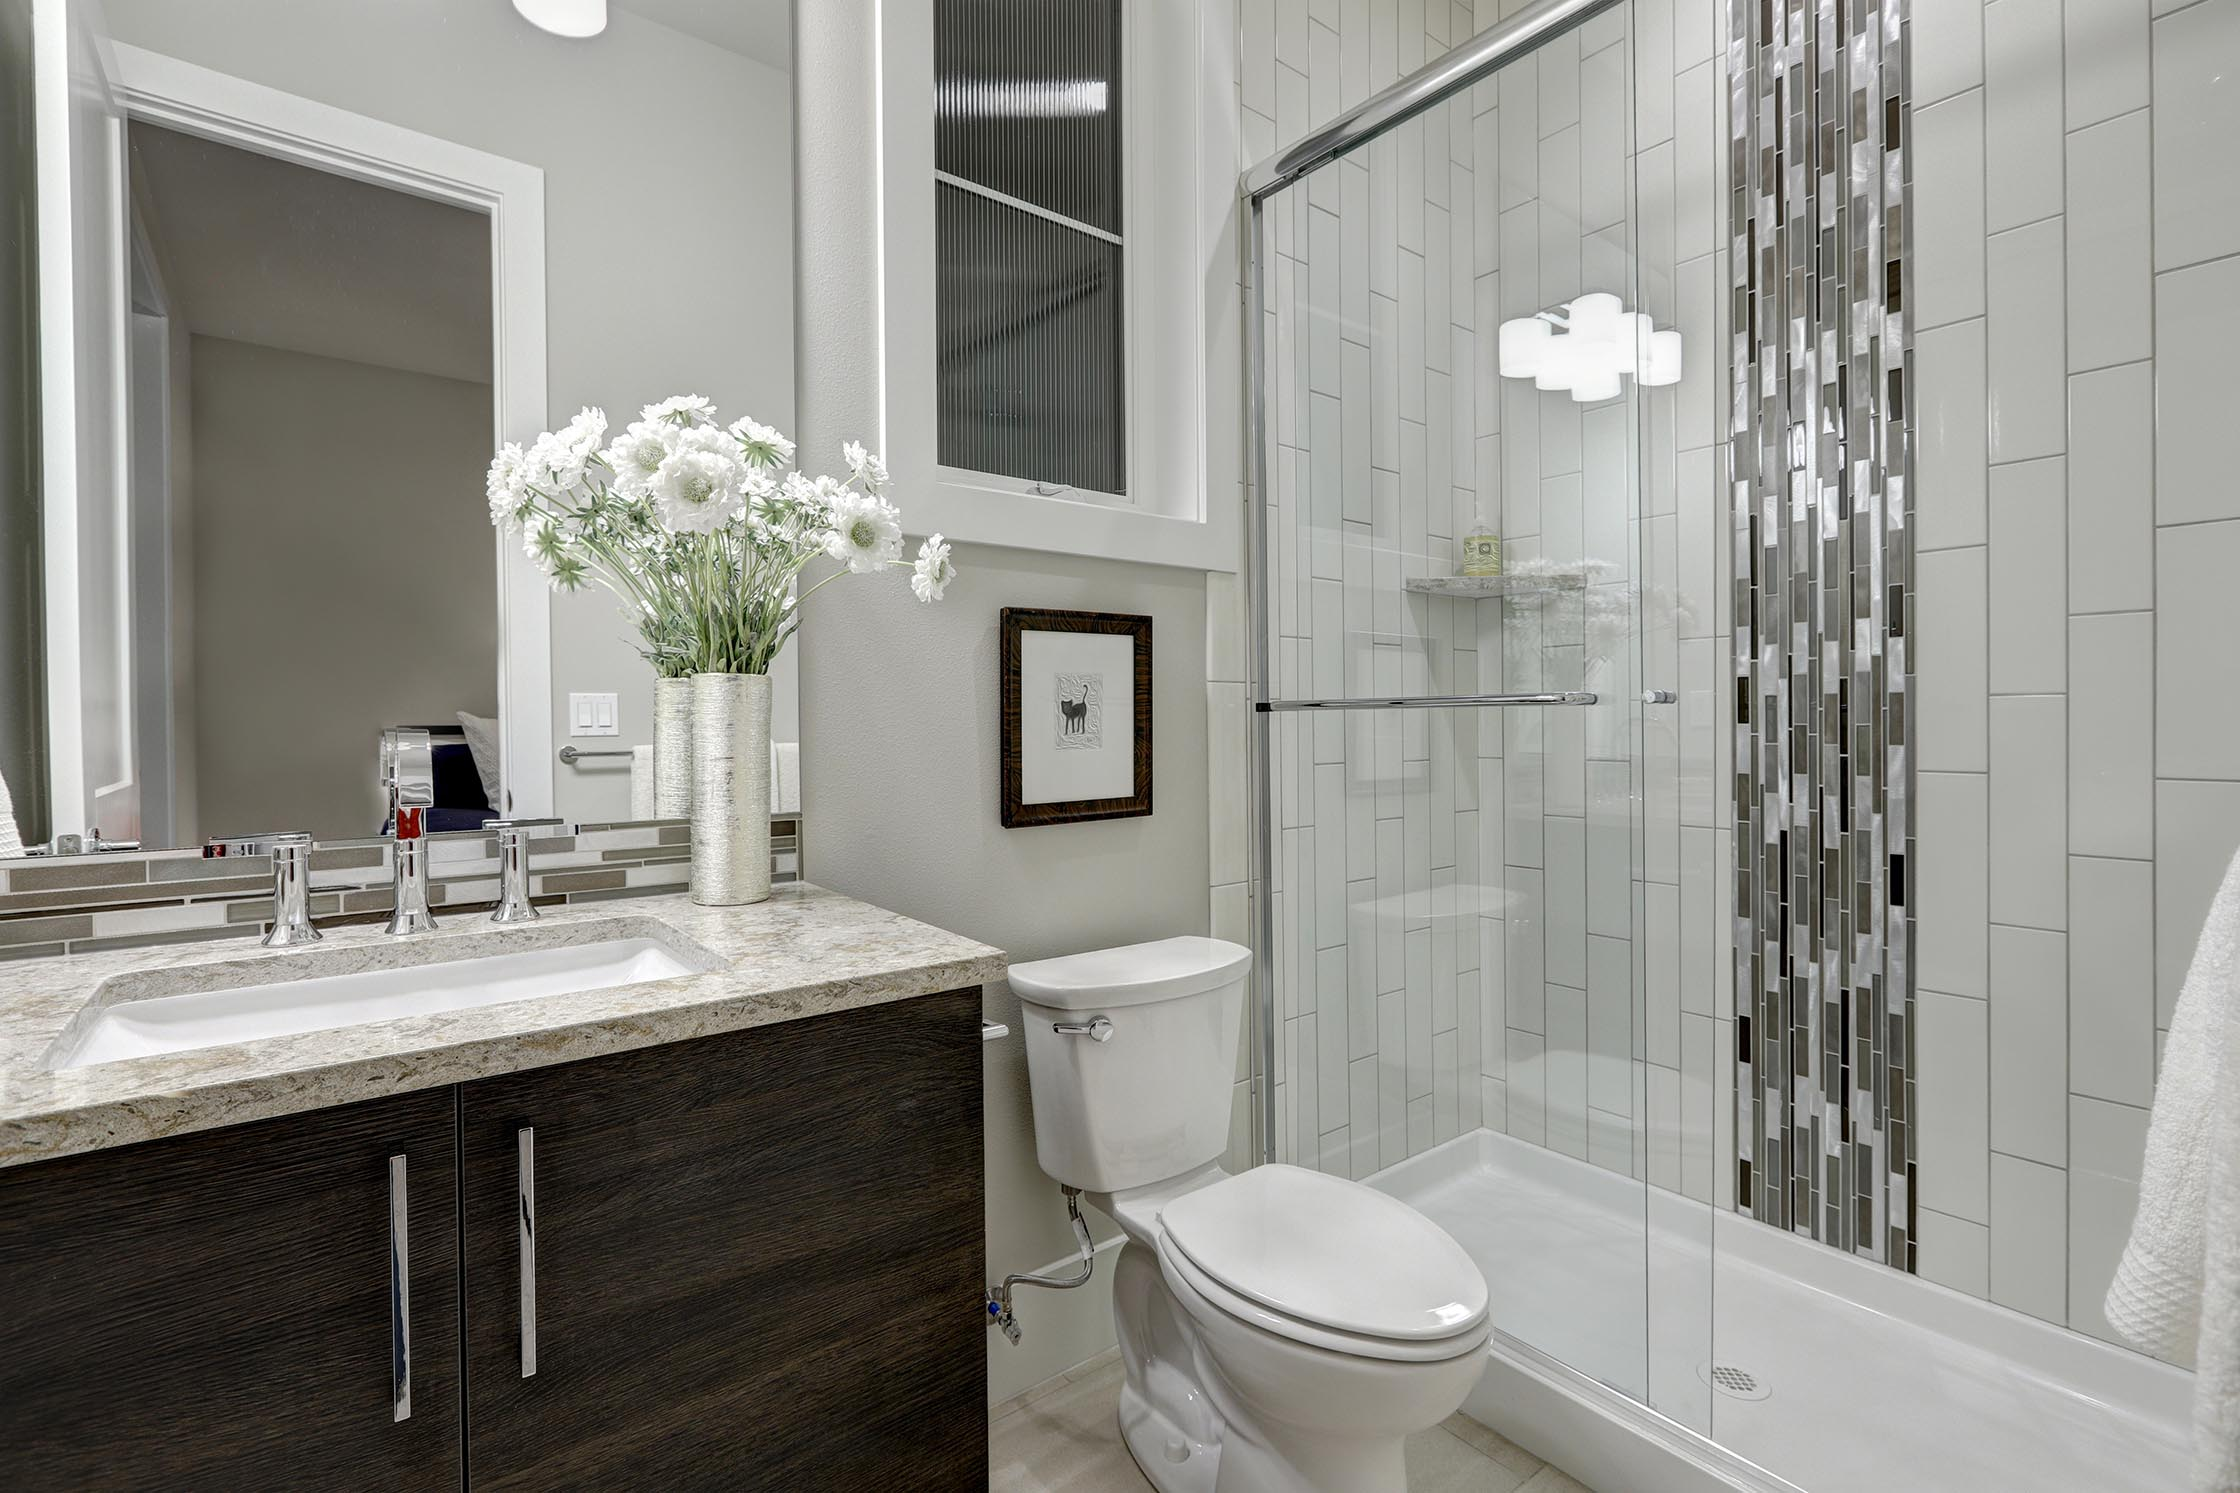 Bathroom Remodeling Greater Boston MA by A.W. Puma Constuction